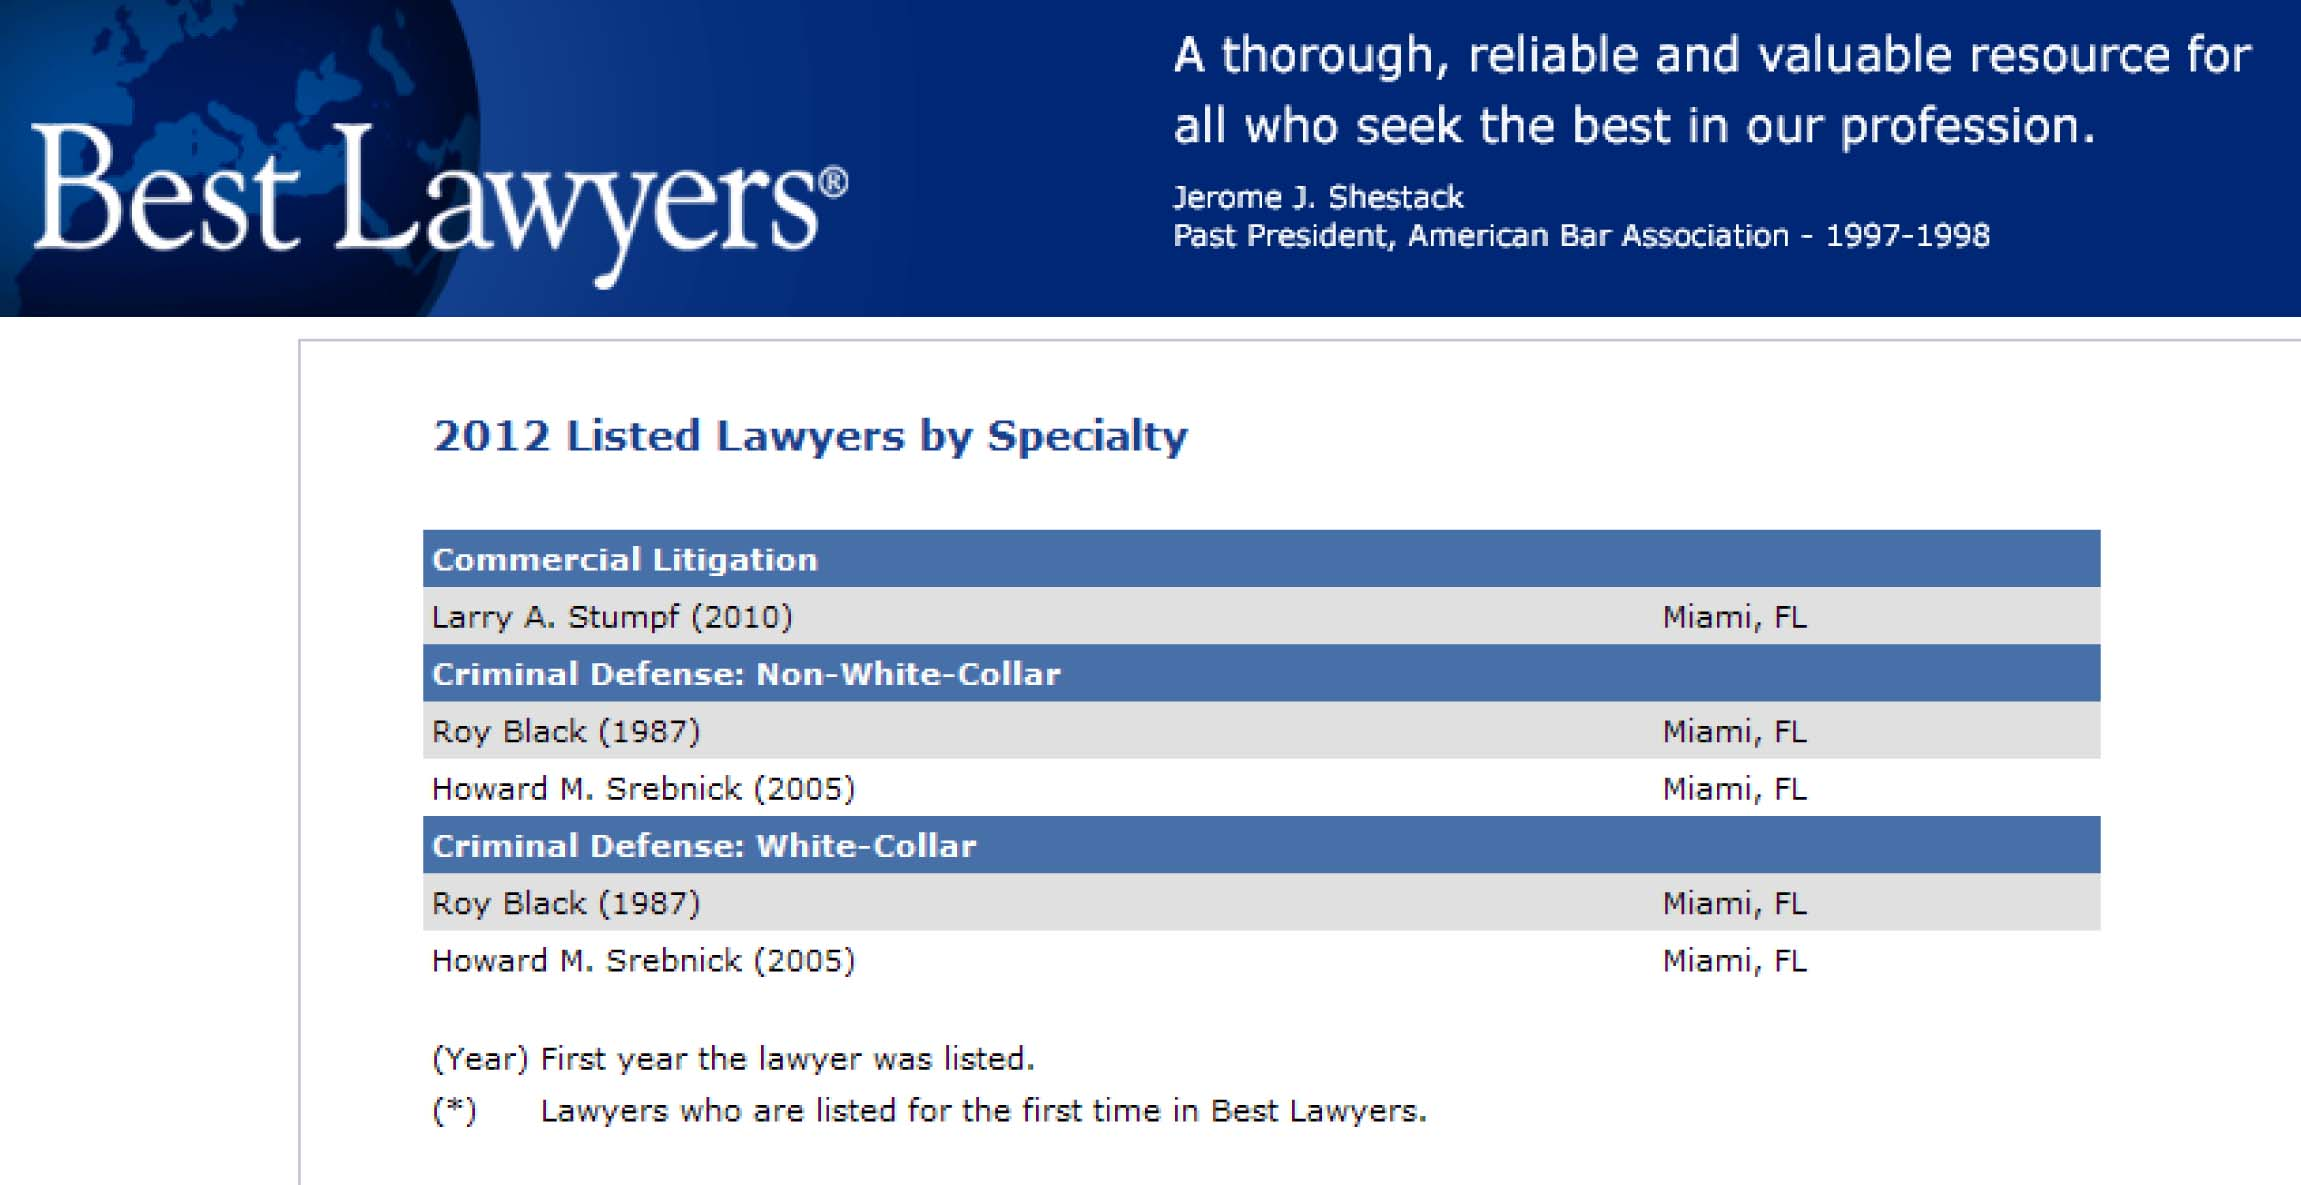 Announcement of 2012 Best Lawyers